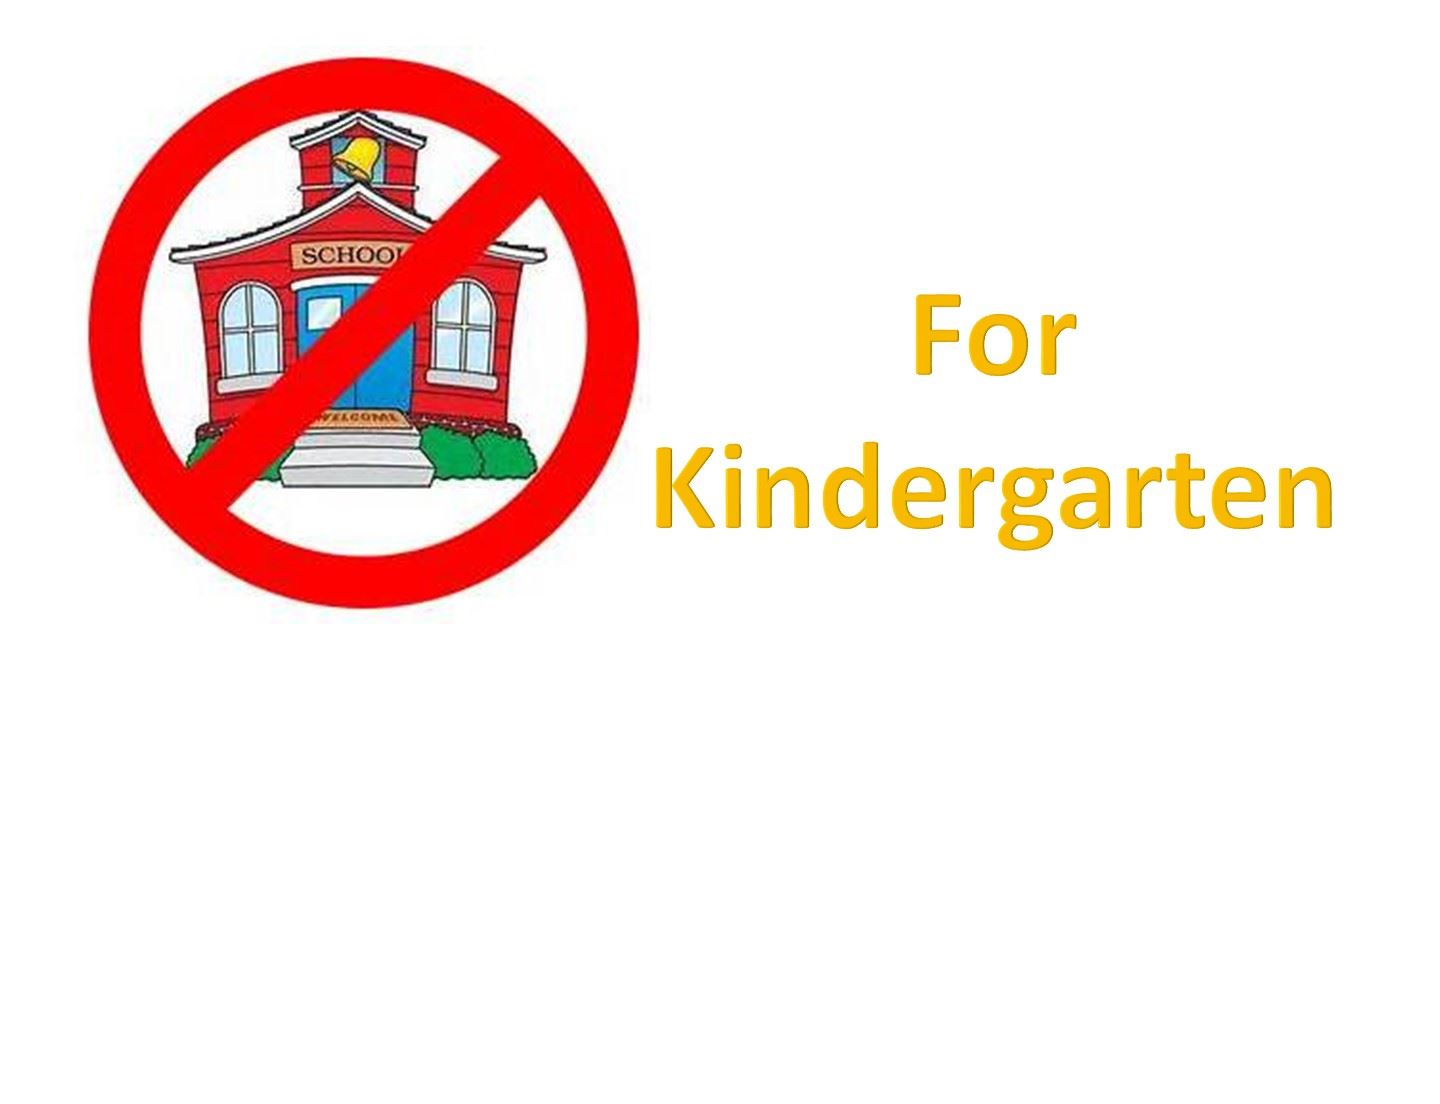 No School for Kindergarten